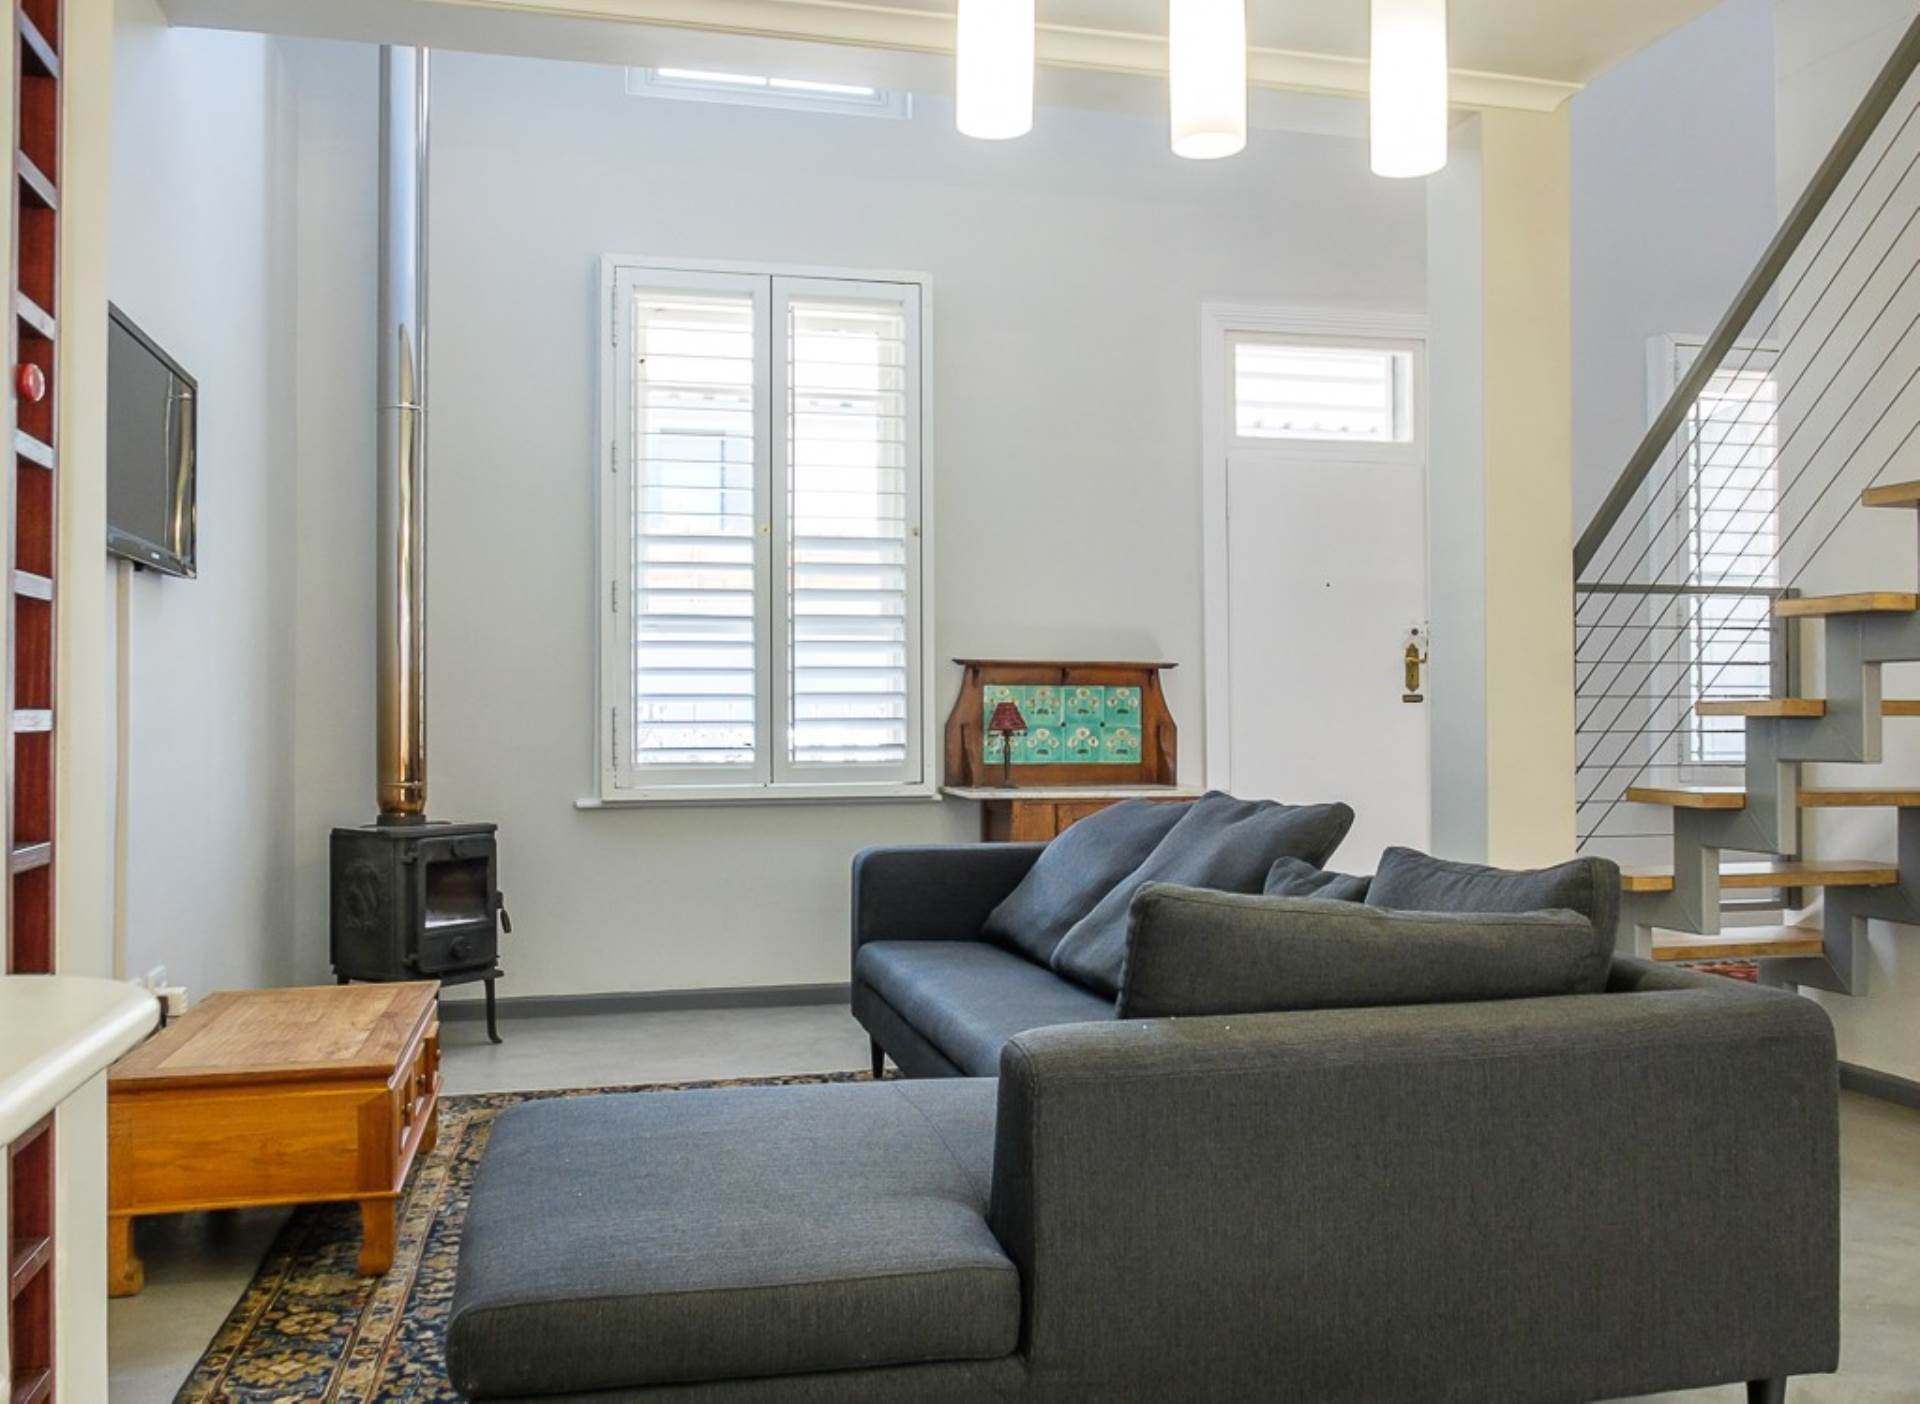 2 BedroomHouse For Sale In Sea Point